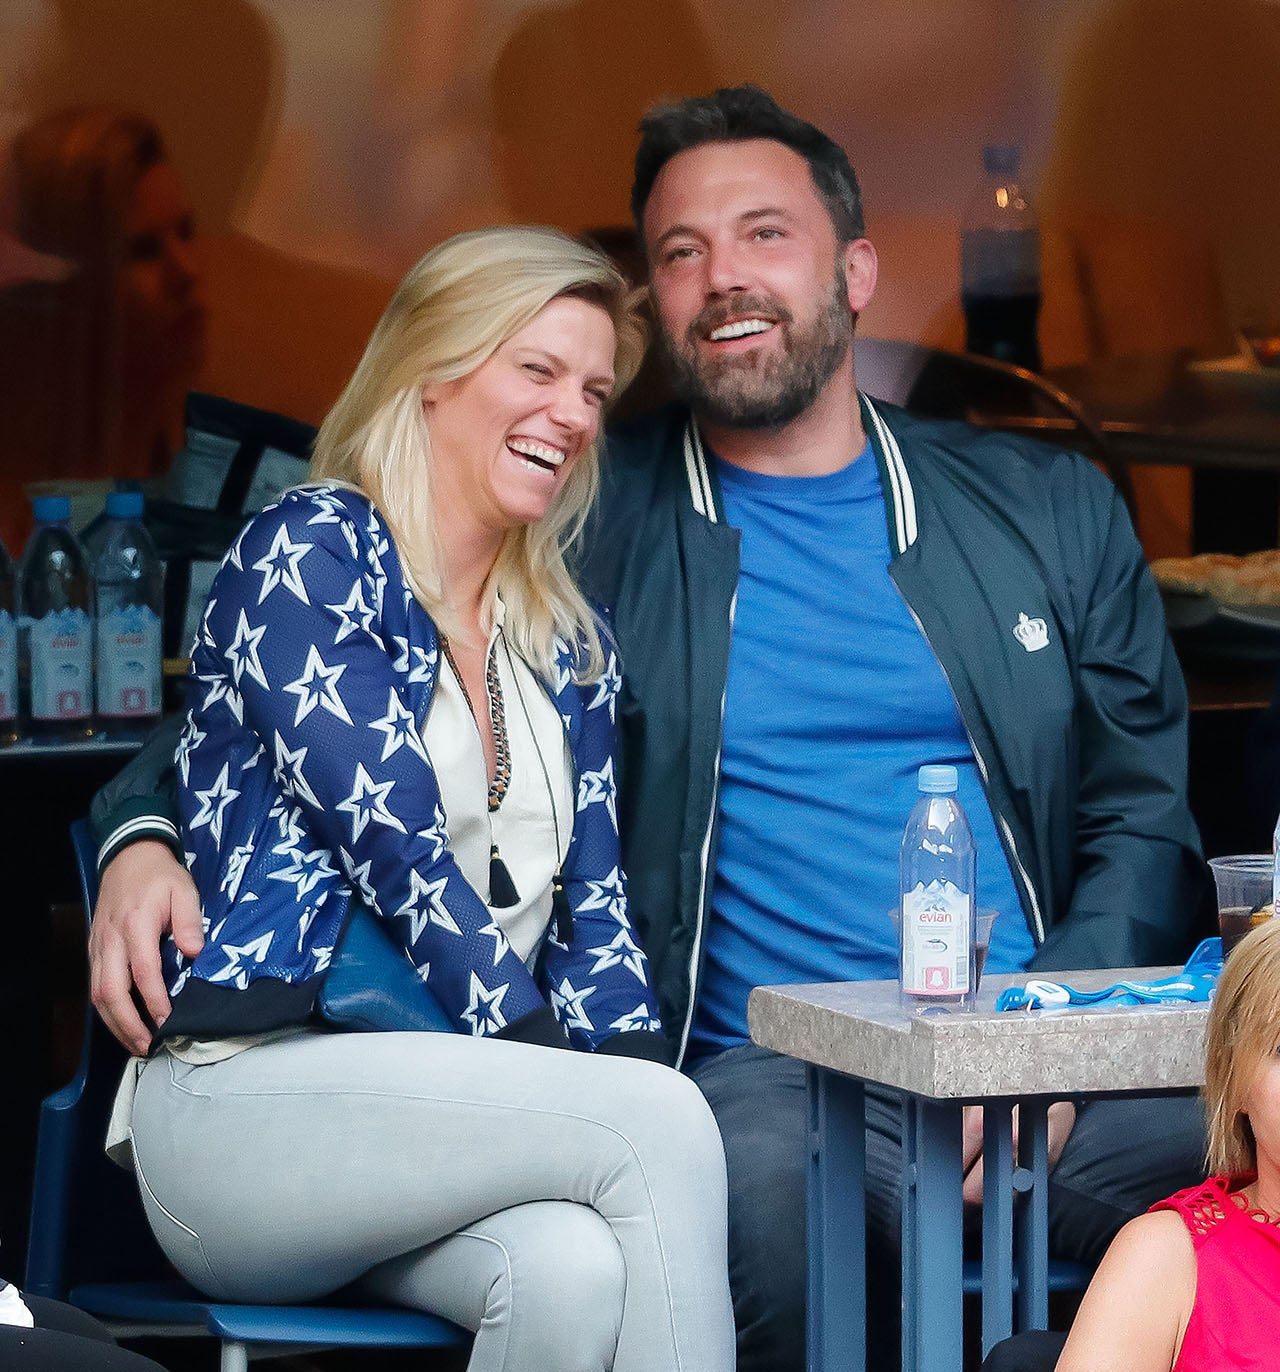 Lindsay Shookus and Ben Affleck at the US Open